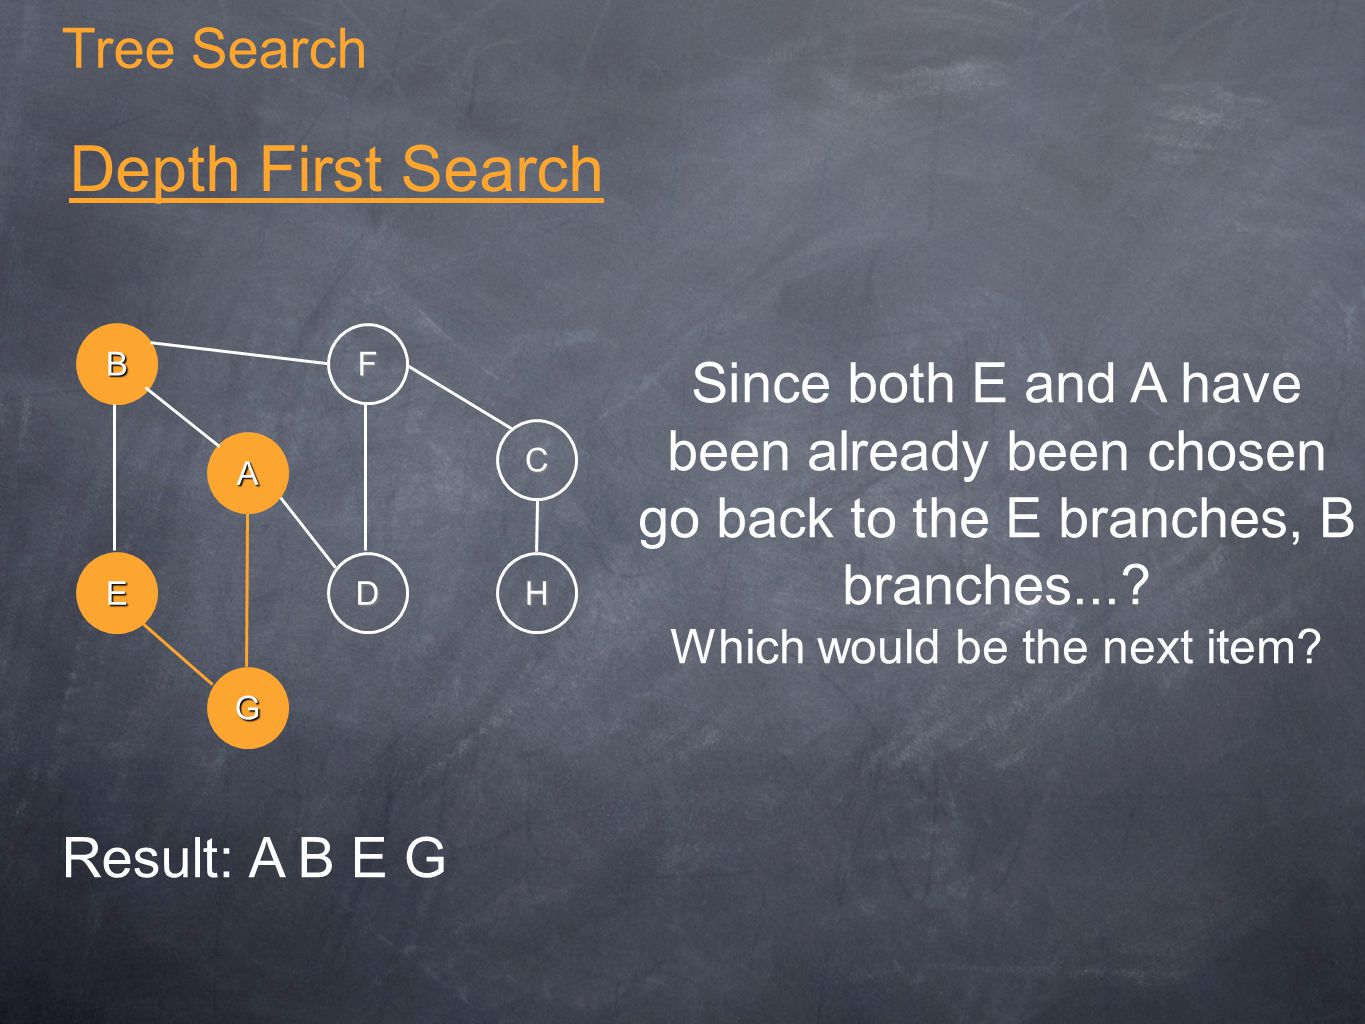 Tree Search A B C G E F DH Result: A B E G Depth First Search Since both E and A have been already been chosen go back to the E branches, B branches..